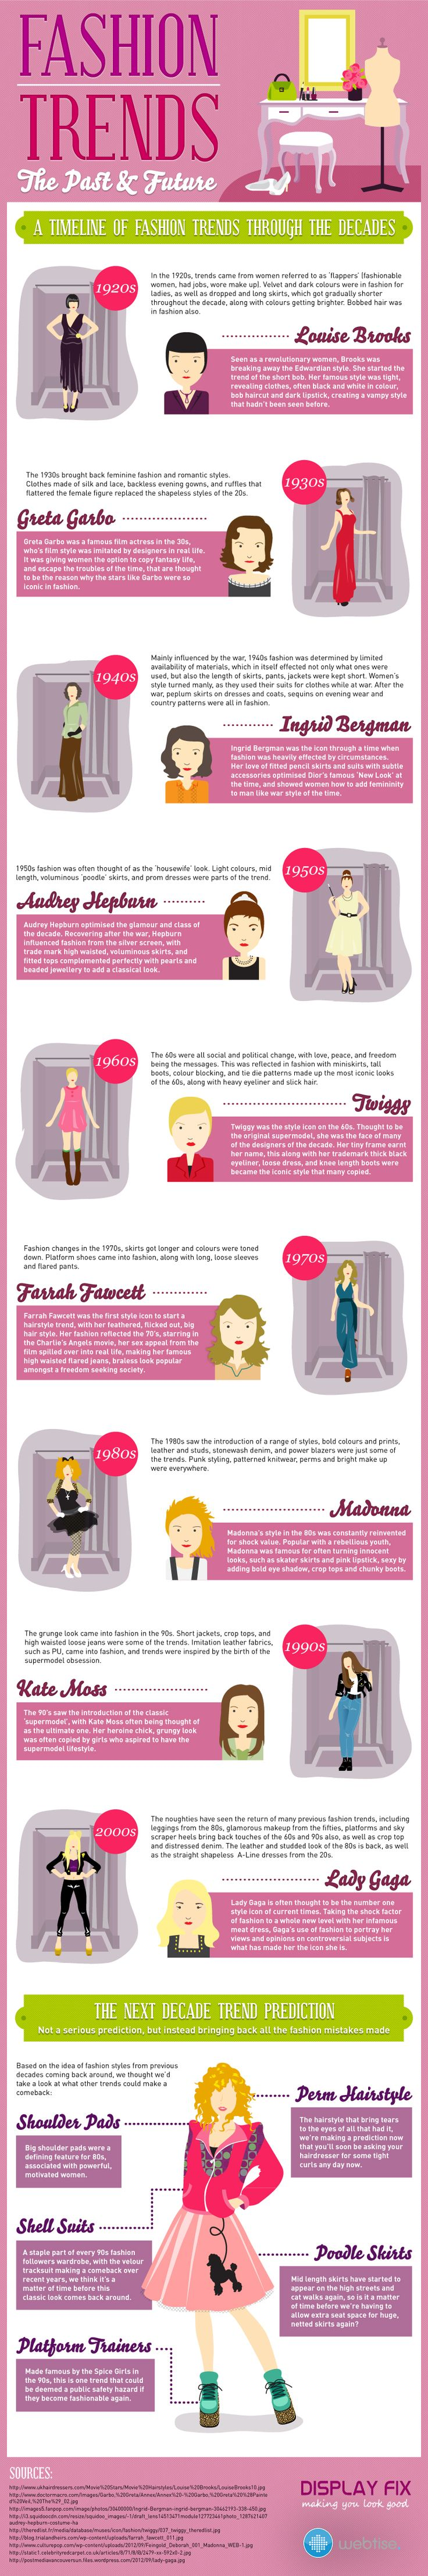 We've put together an infographic which looks back at the fashion trends through the ages.